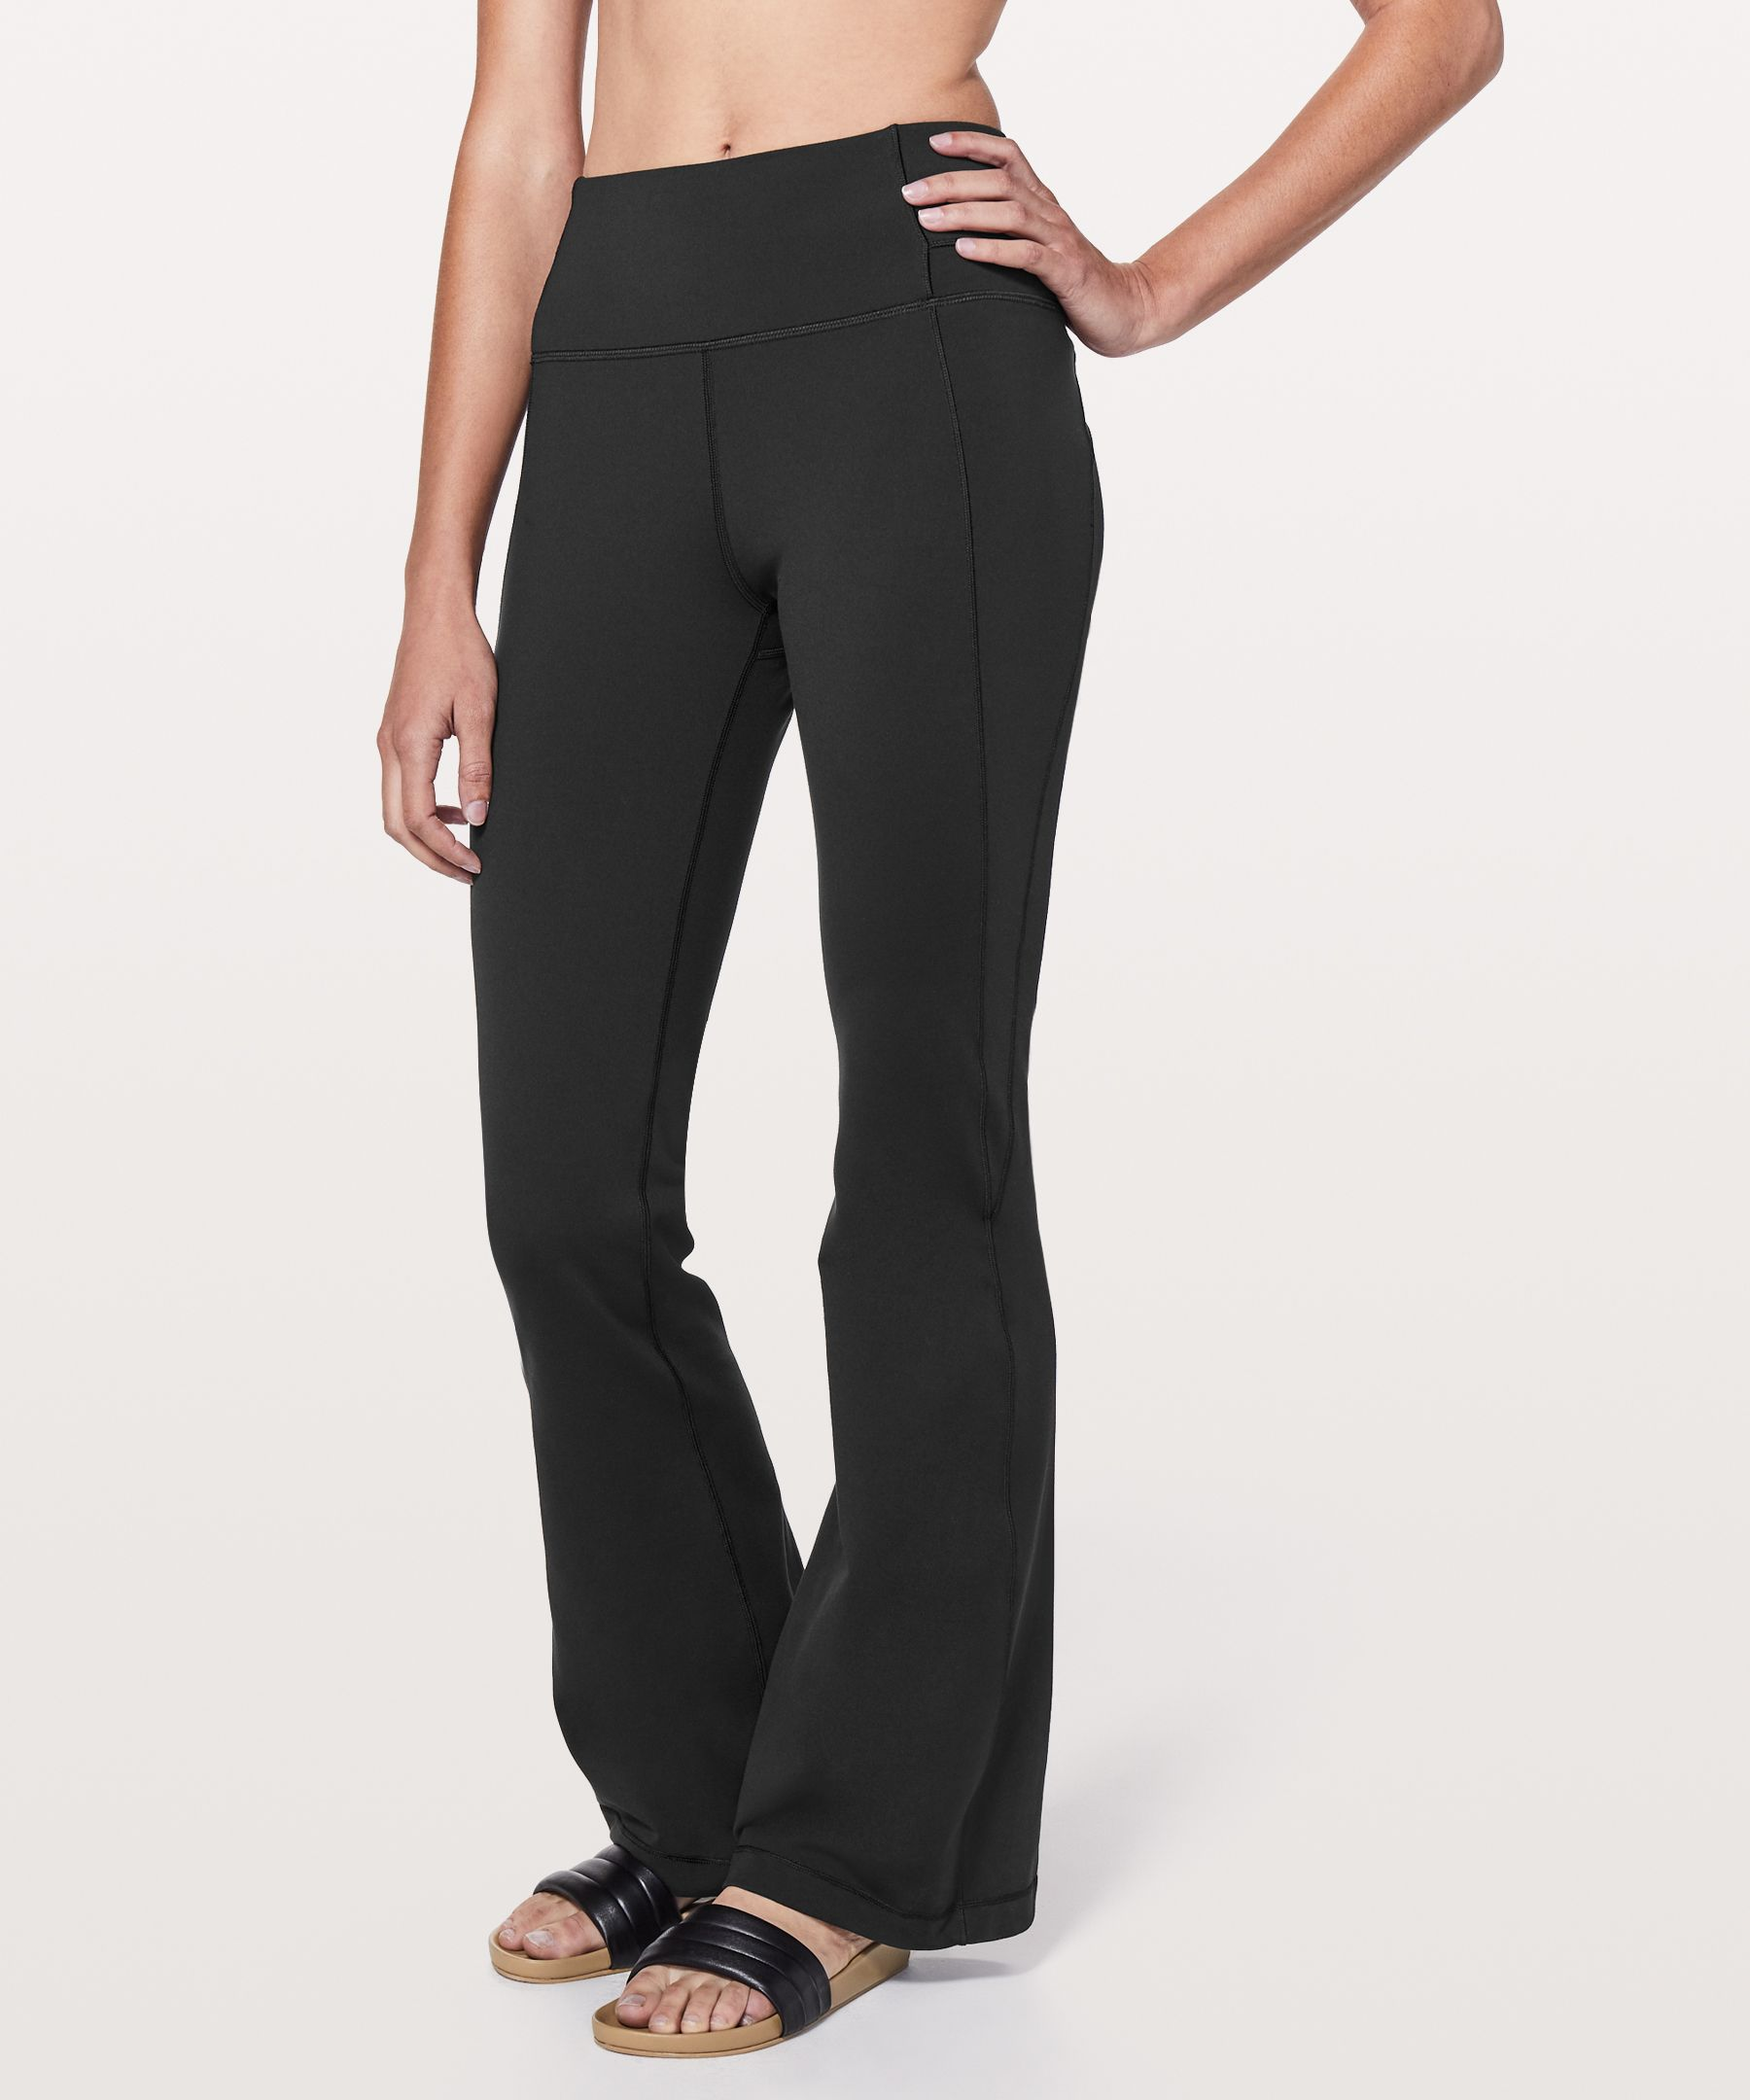 "Groove Pant Flare 32"" by Lululemon"